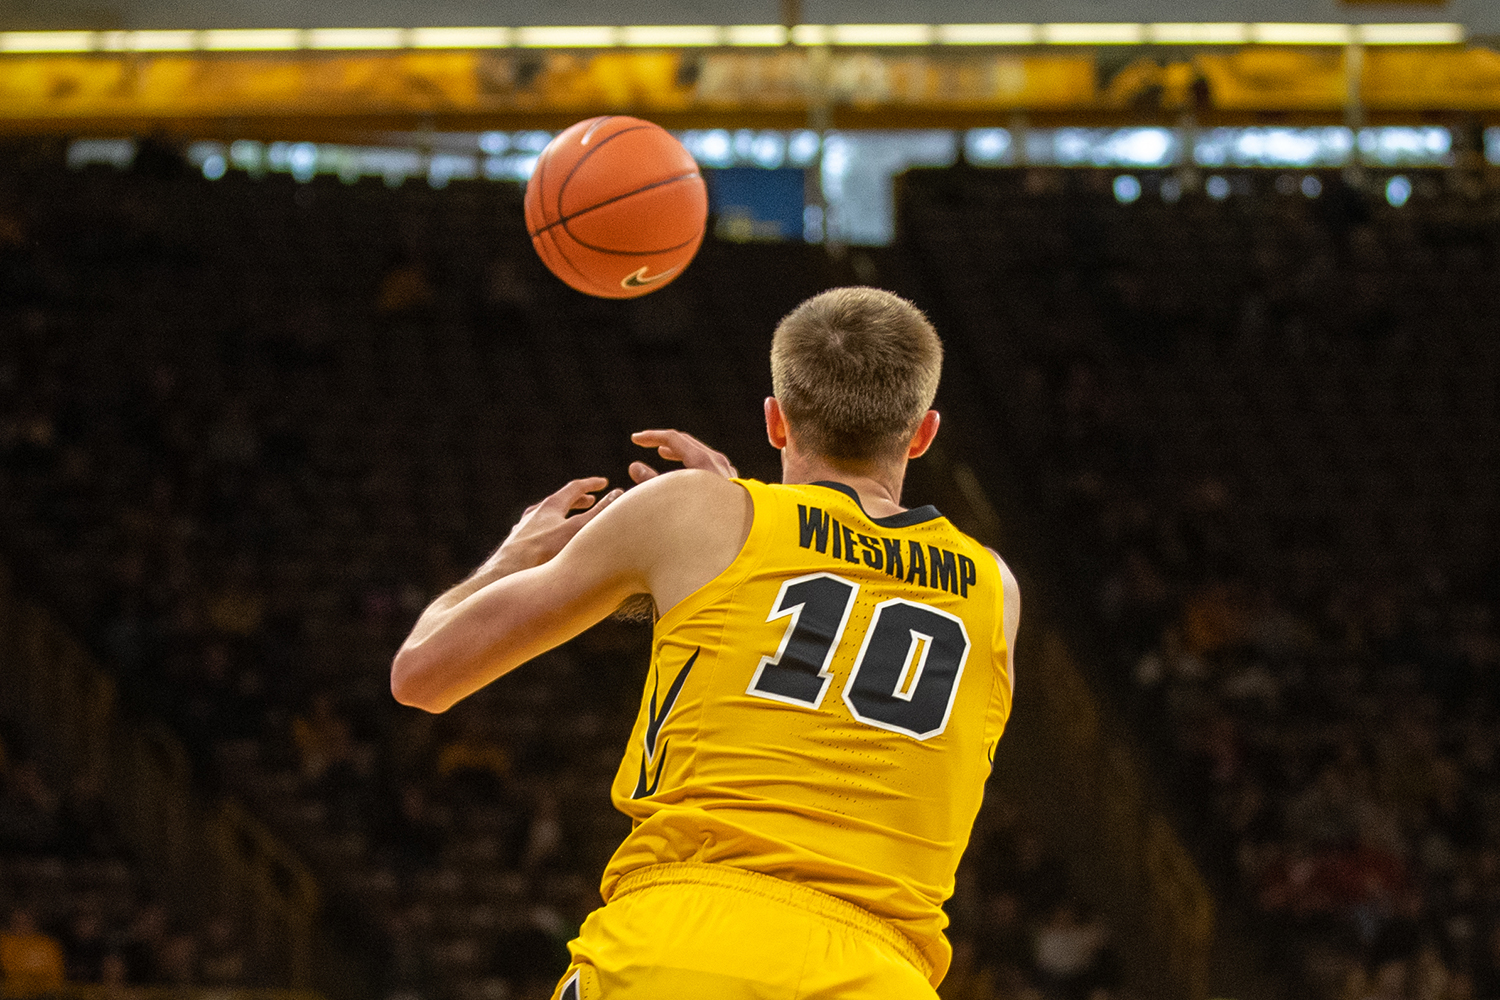 Iowa+guard+Joe+Wieskamp+%2310+recieves+a+pass+during+the+men%27s+basketball+game+against+Savannah+State+at+Carver-Hawkeye+Arena+on+Tuesday%2C+December+22%2C+2018.+The+Hawkeyes+defeated+the+Tigers+110-64.